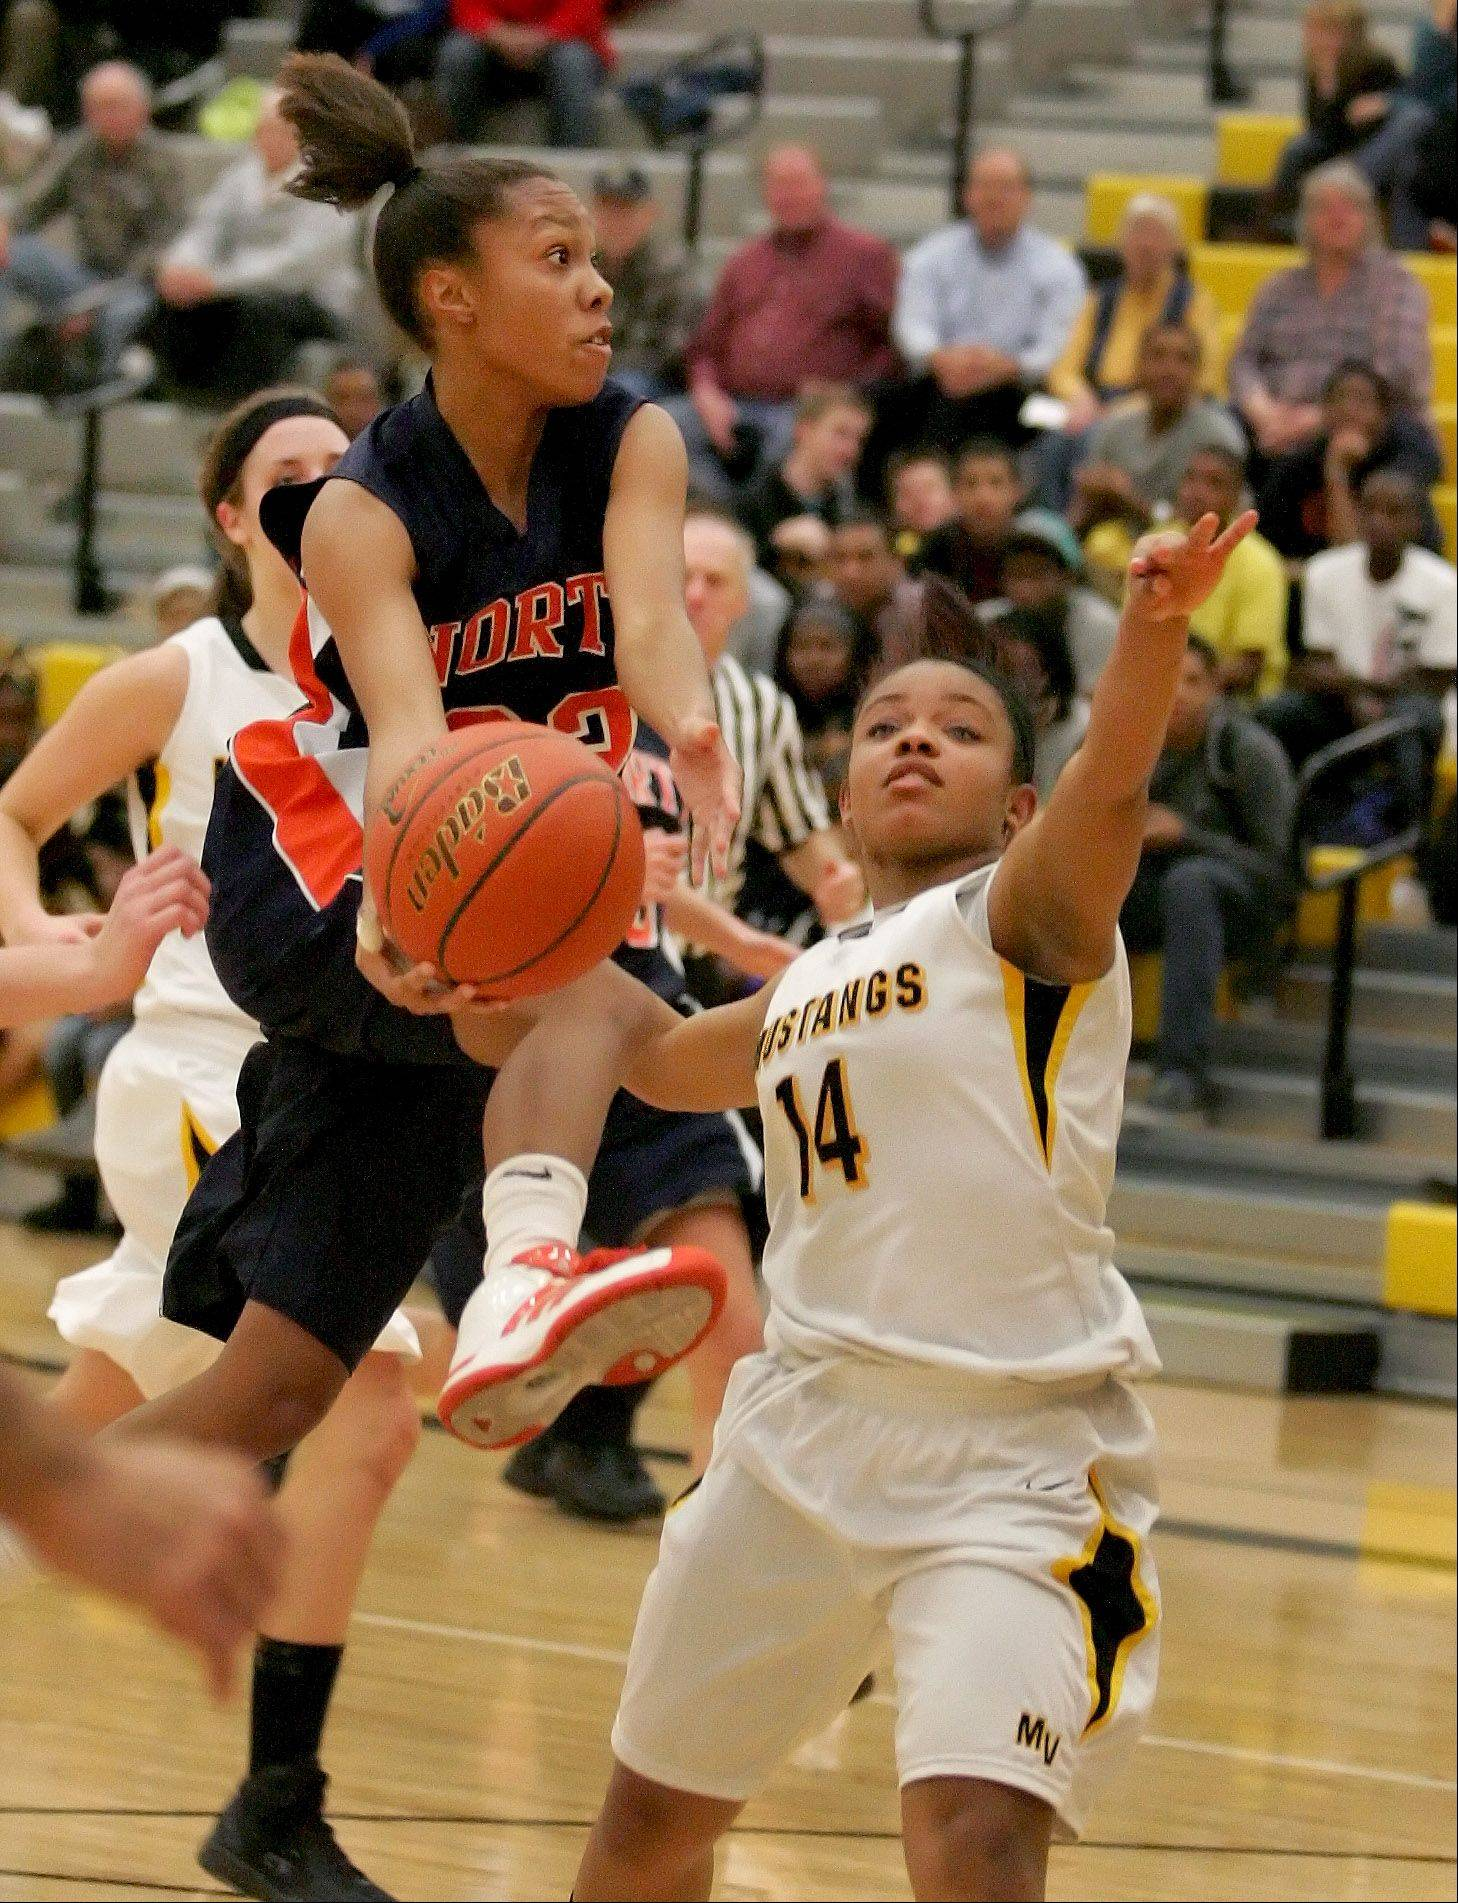 Naperville North's Zoe Swift, left, heads to the basket past Metea Valley's Kellee Clay Tuesday in Aurora.